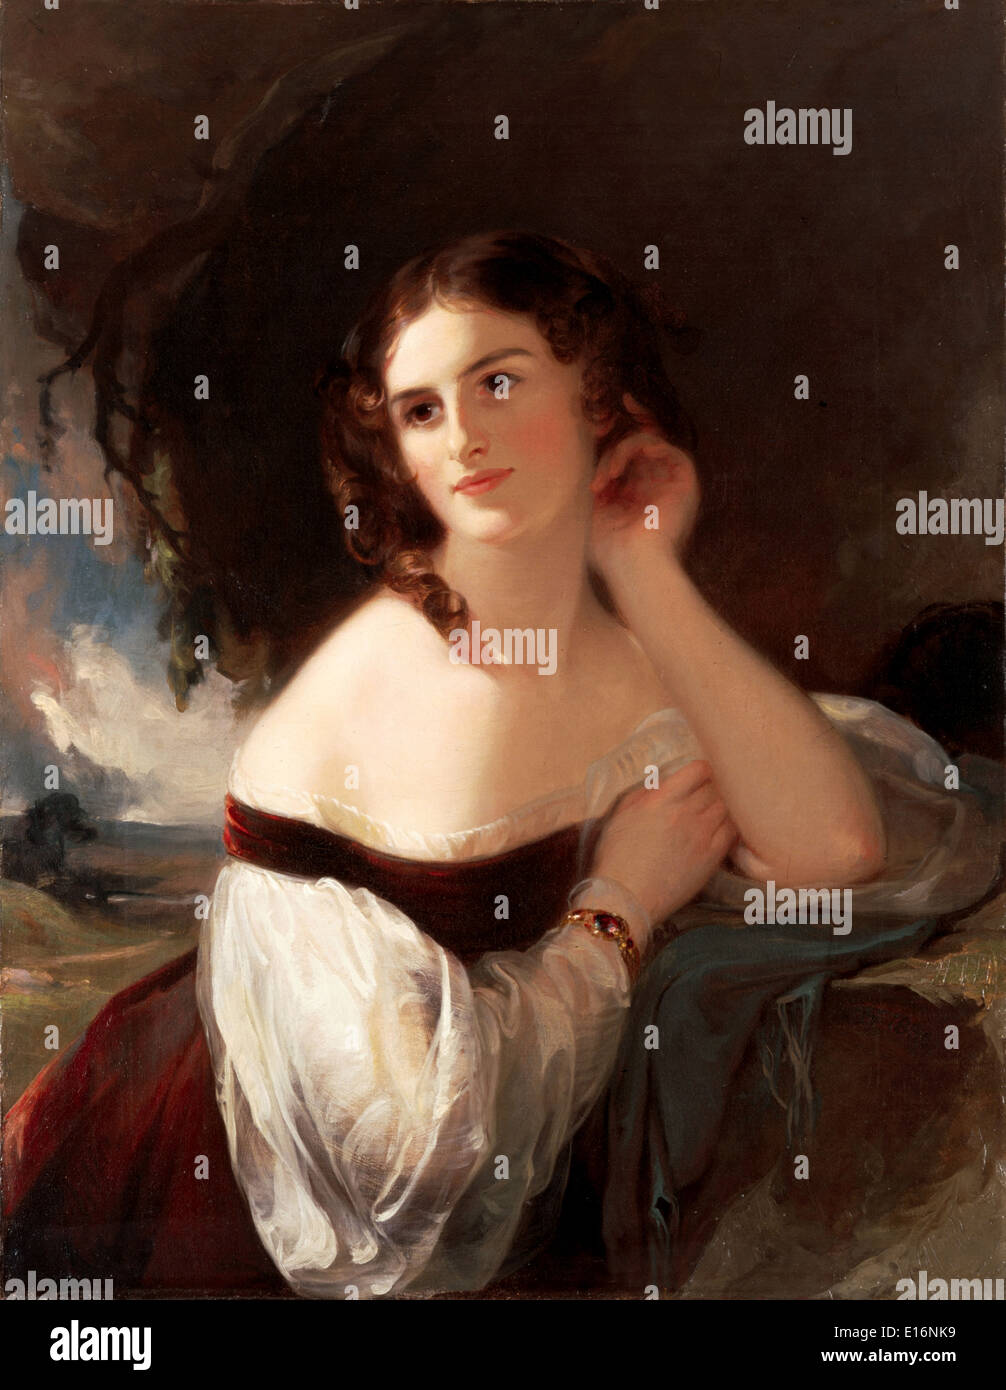 Portrait of Fanny Kemble by Thomas Sully, 1834 - Stock Image